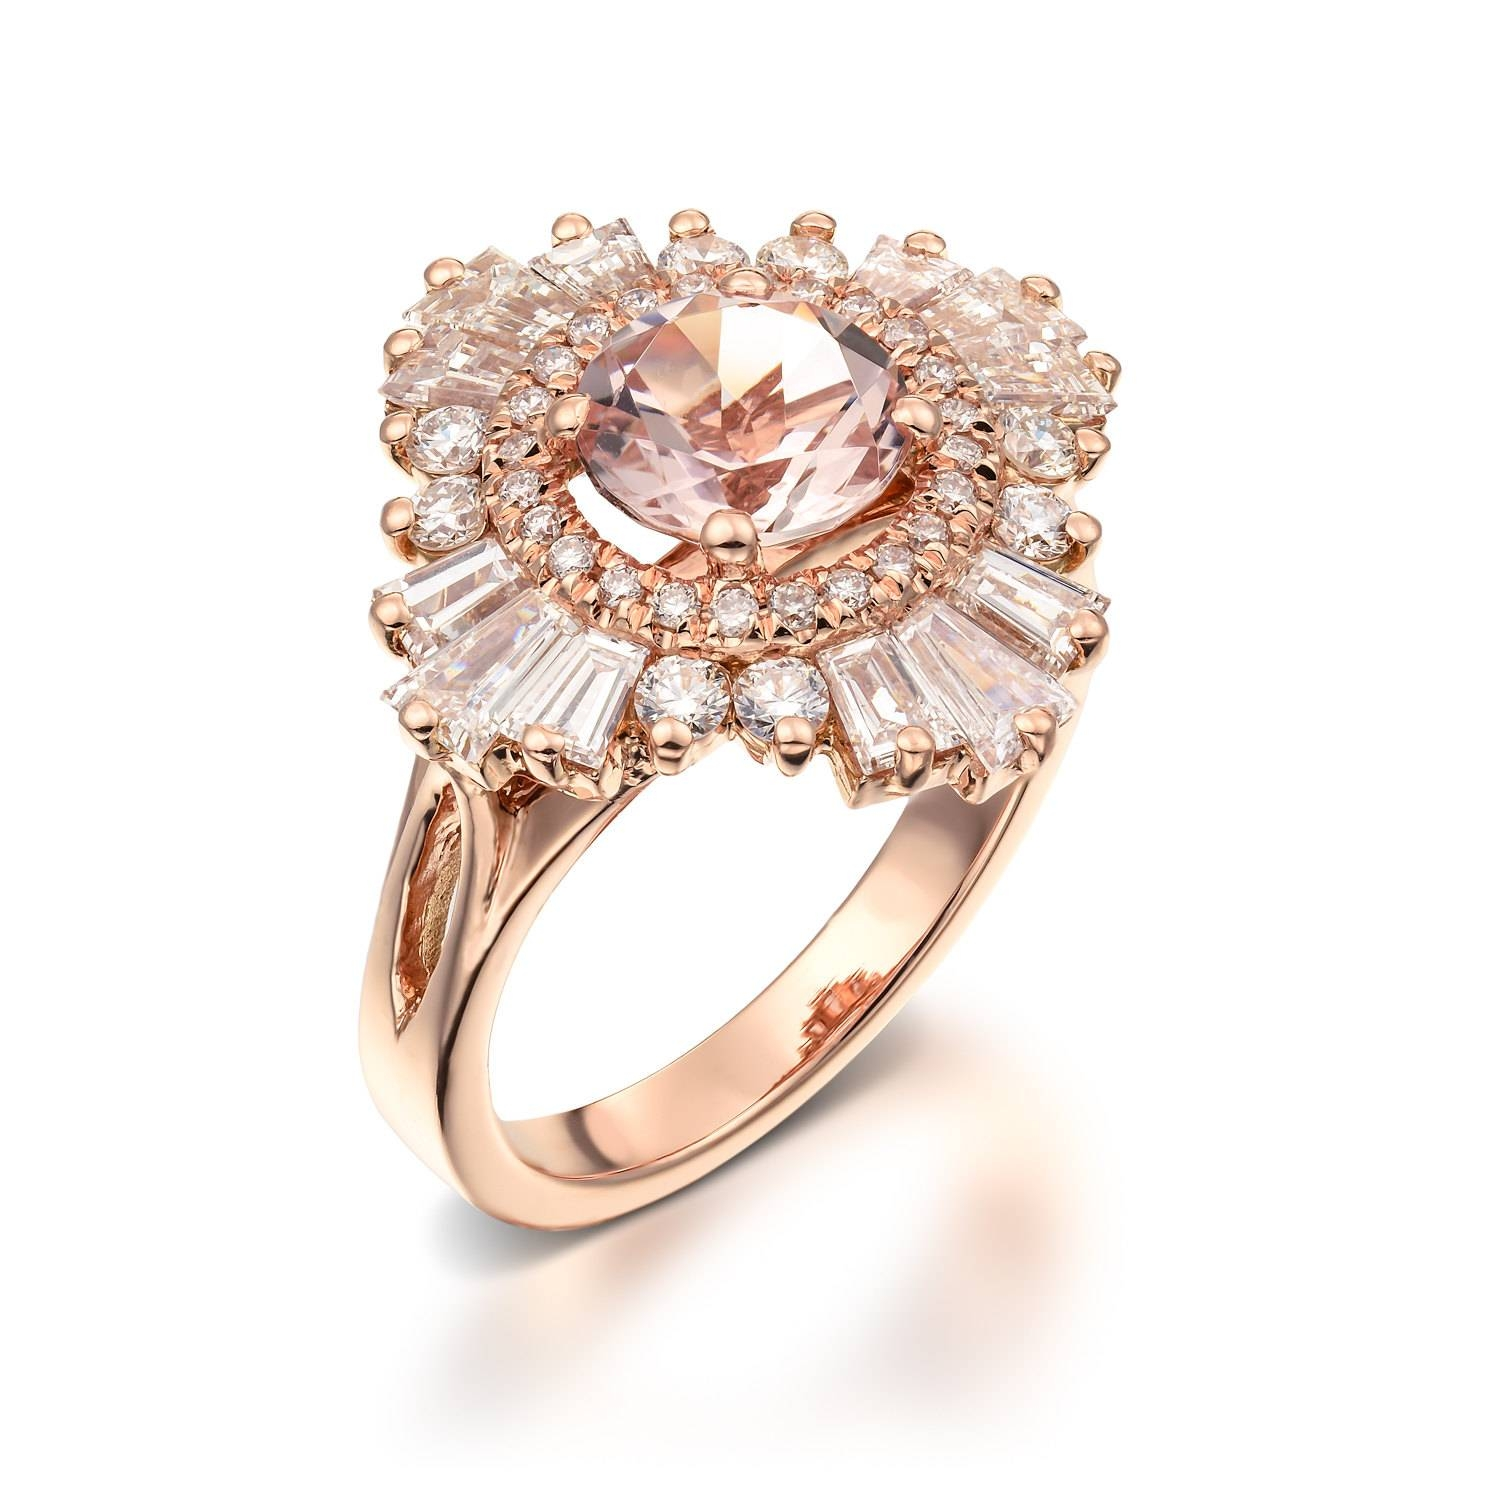 Unique Engagement Ring 18K Rose Gold Diamonds And Morganite Within Most Recently Released Anniversary Rings With Baguettes (Gallery 25 of 25)